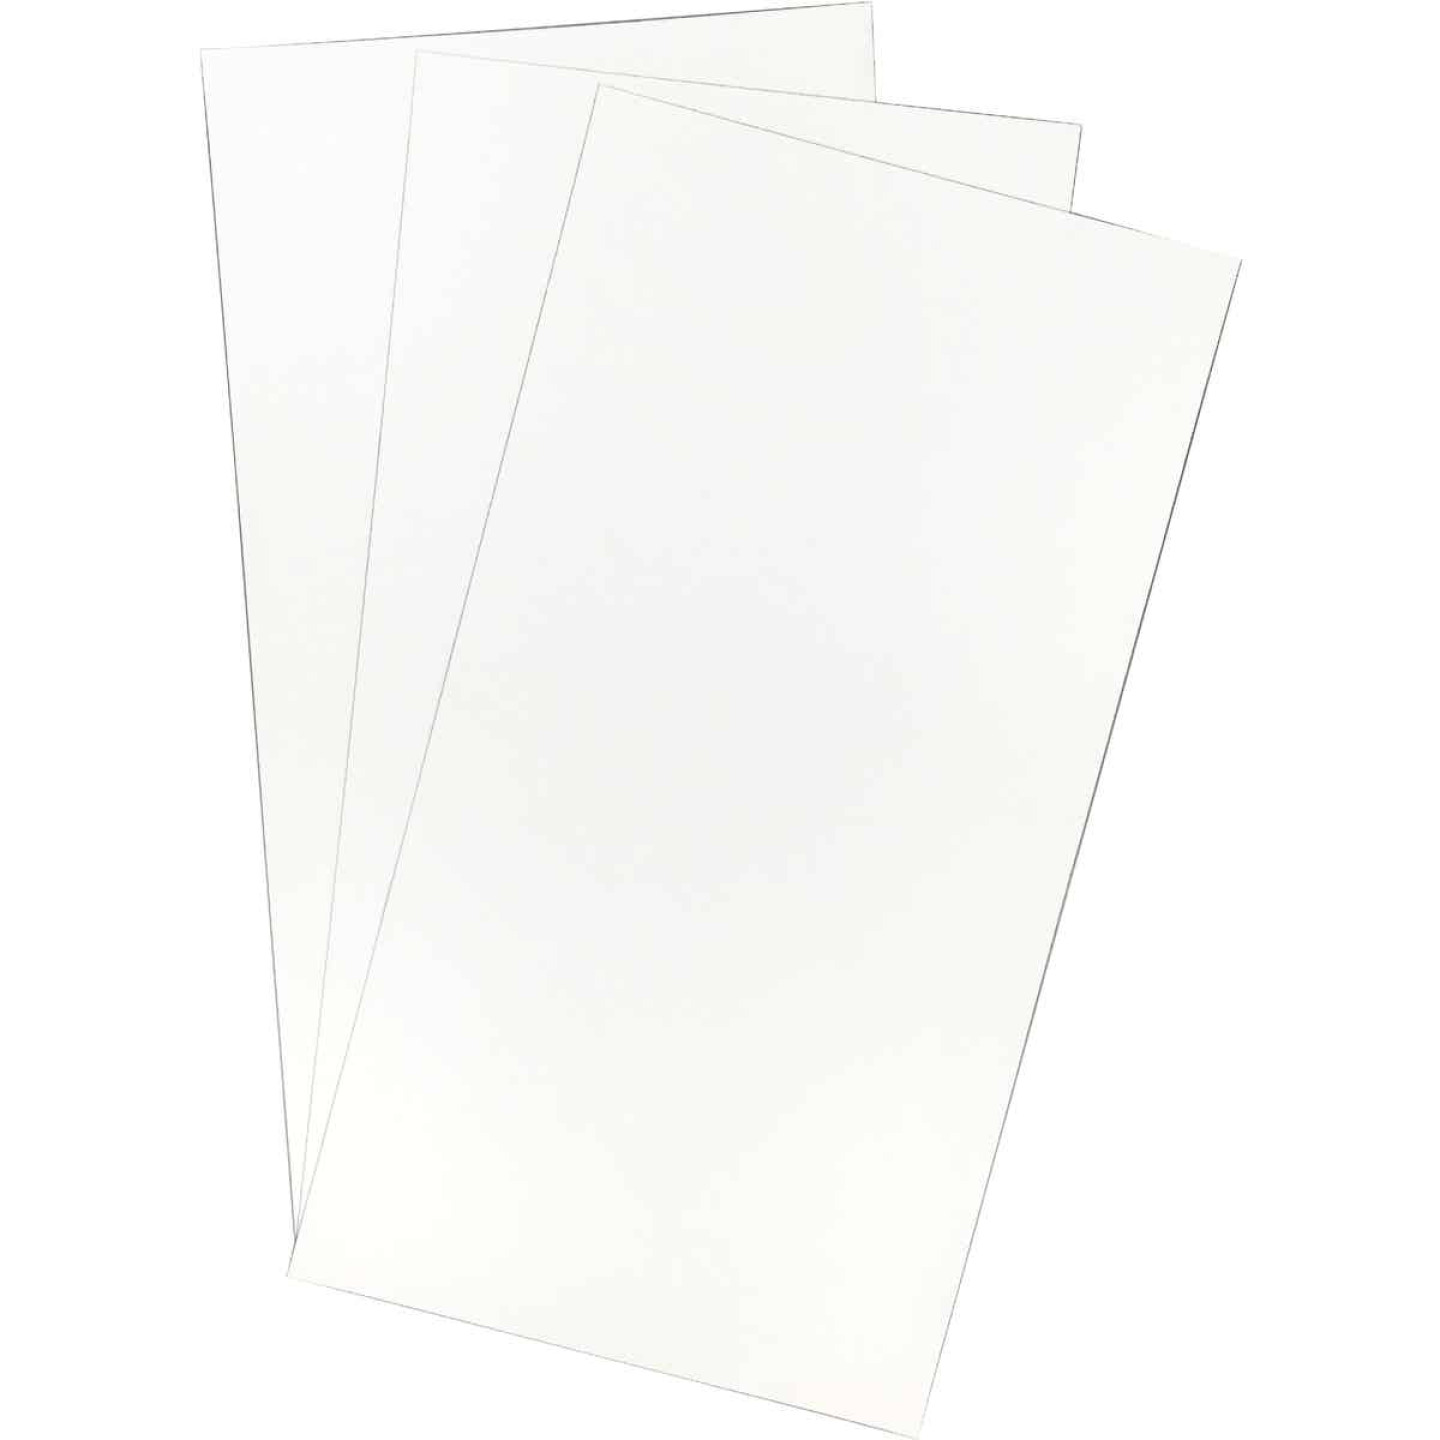 Frost King Paintable Magnetic Vent Cover (3 Pack) Image 2